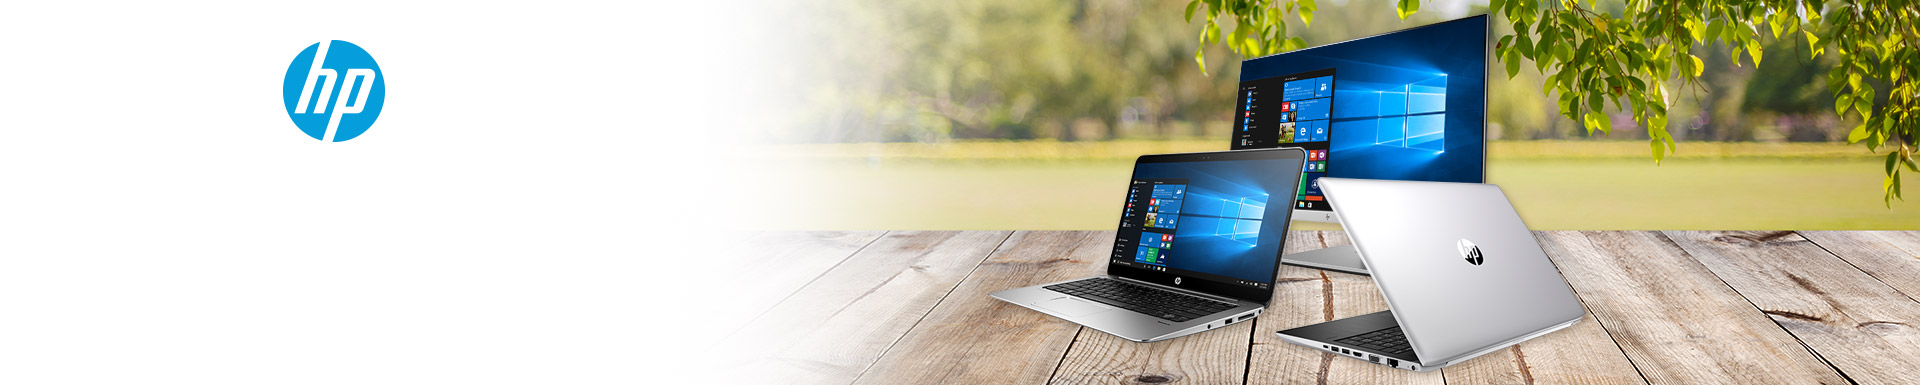 HP Sweet Summer deals: tot 60% zomerkorting op HP producten